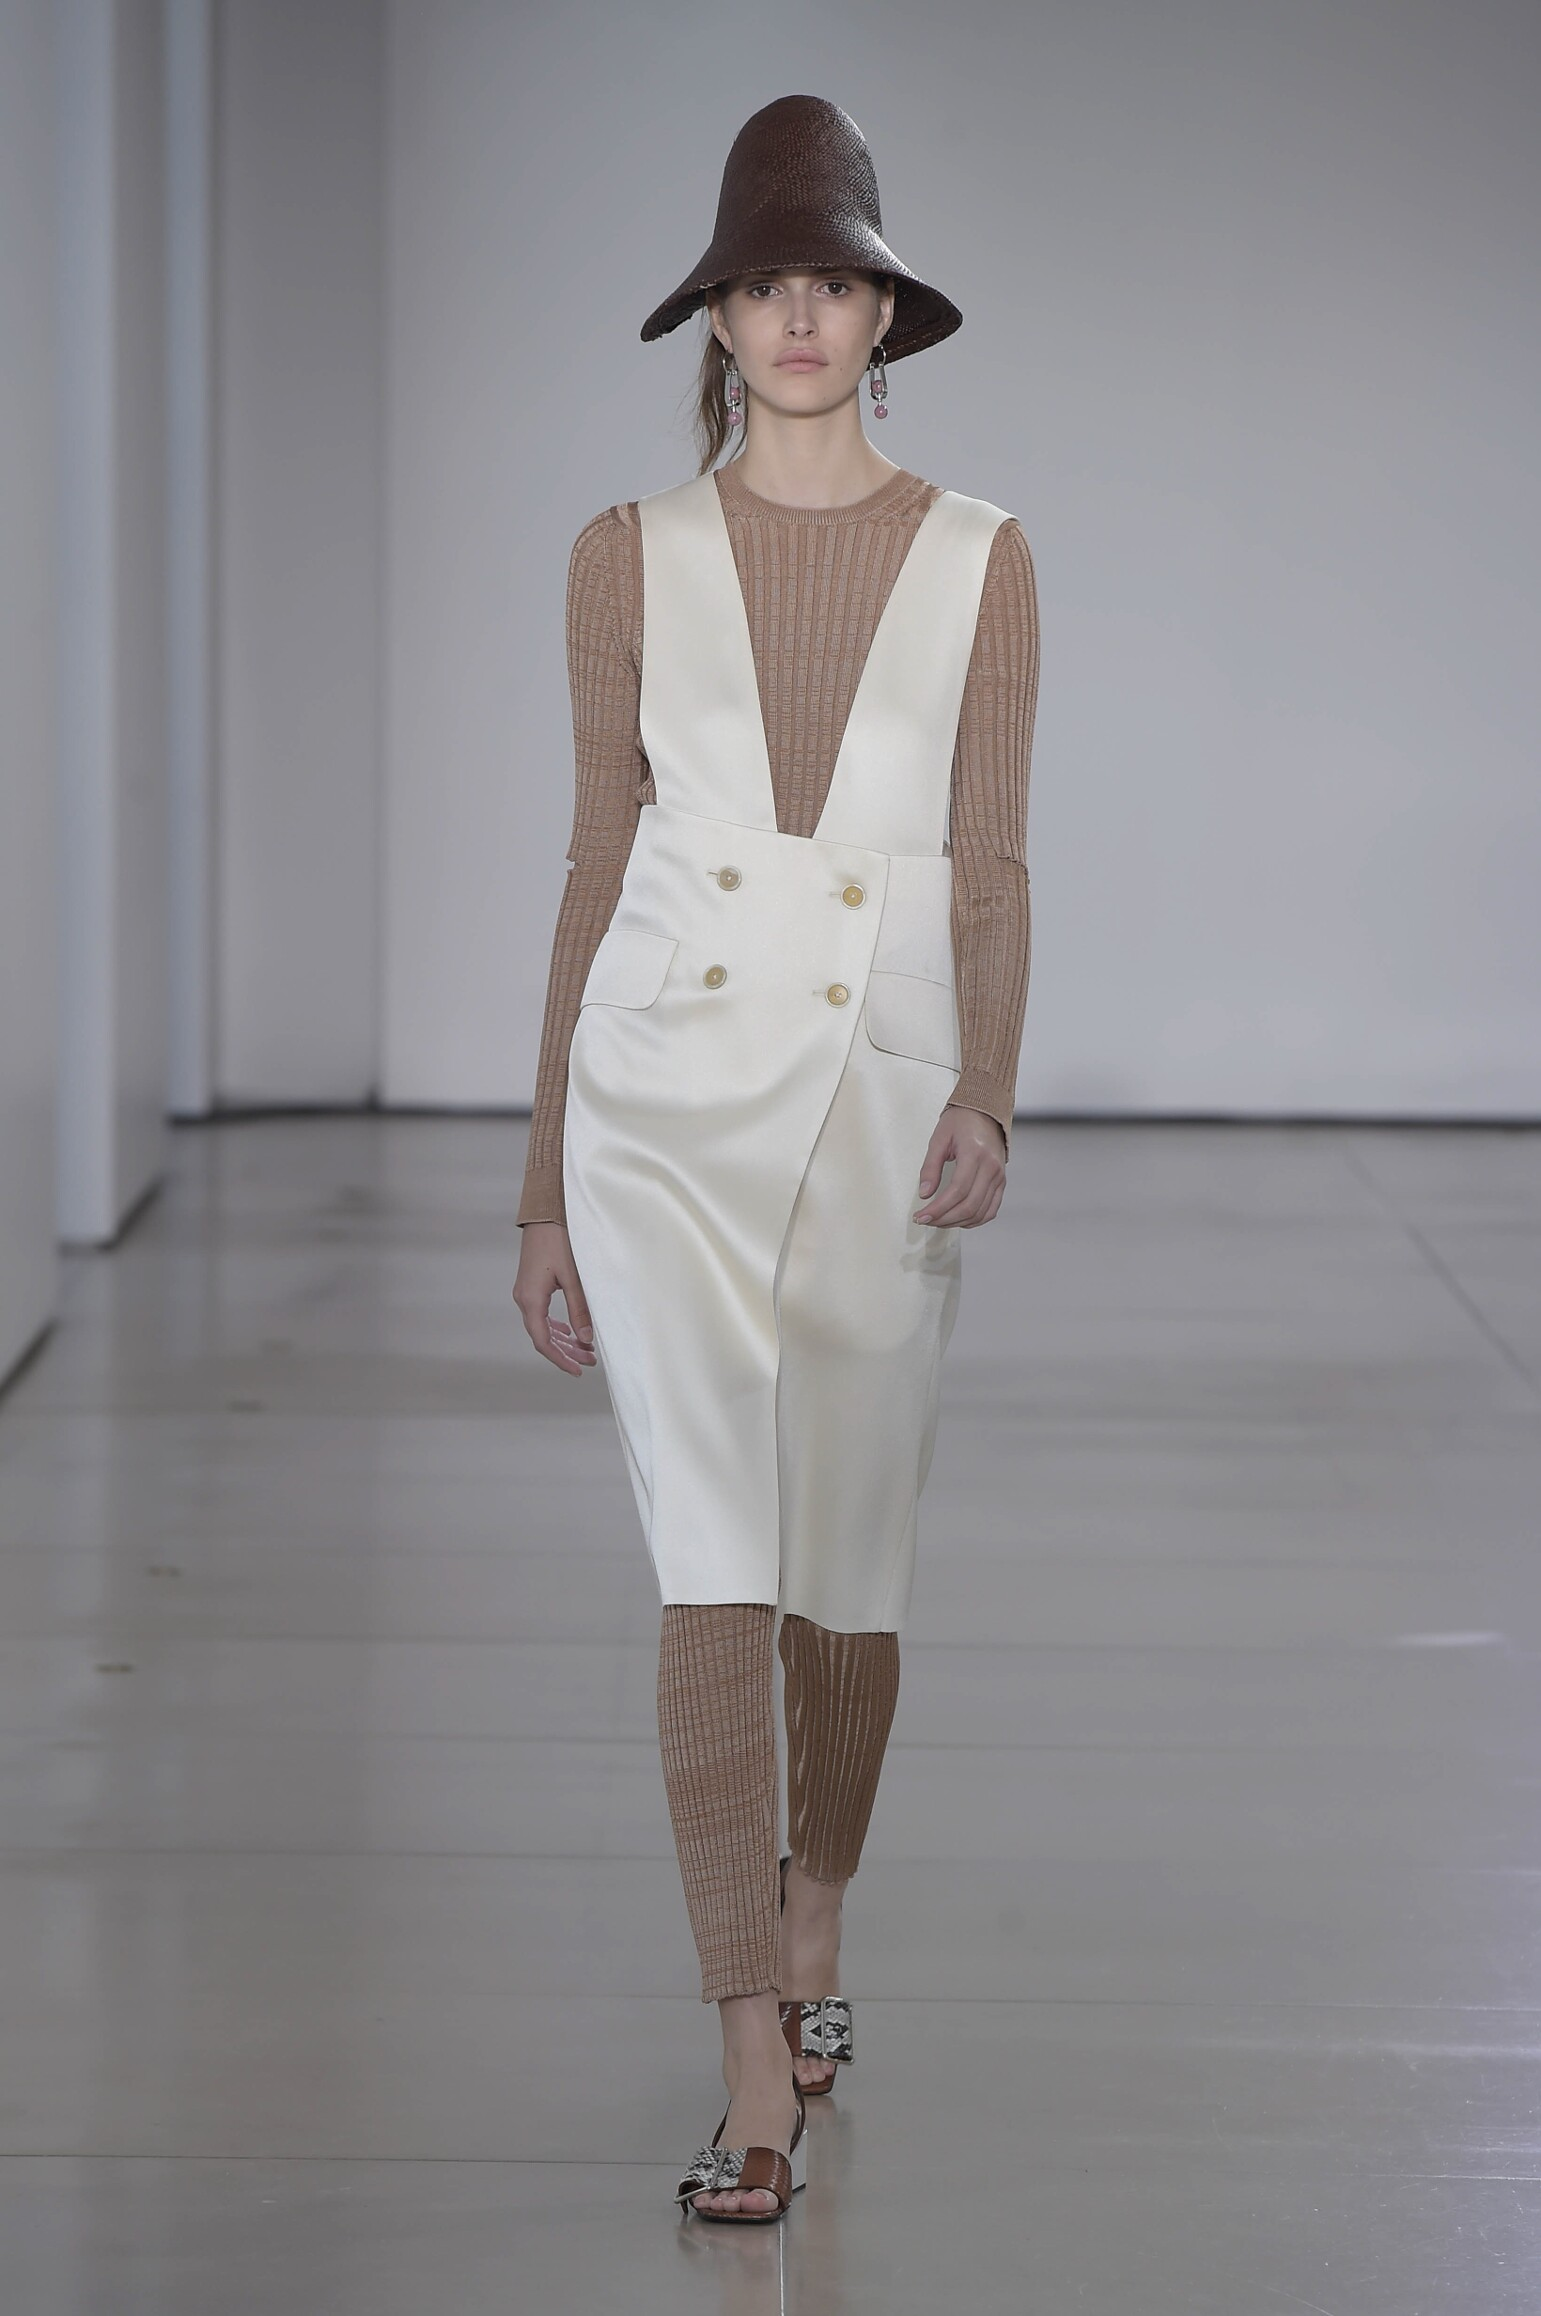 JIL SANDER SPRING SUMMER 2016 WOMEN'S COLLECTION | The Skinny Beep